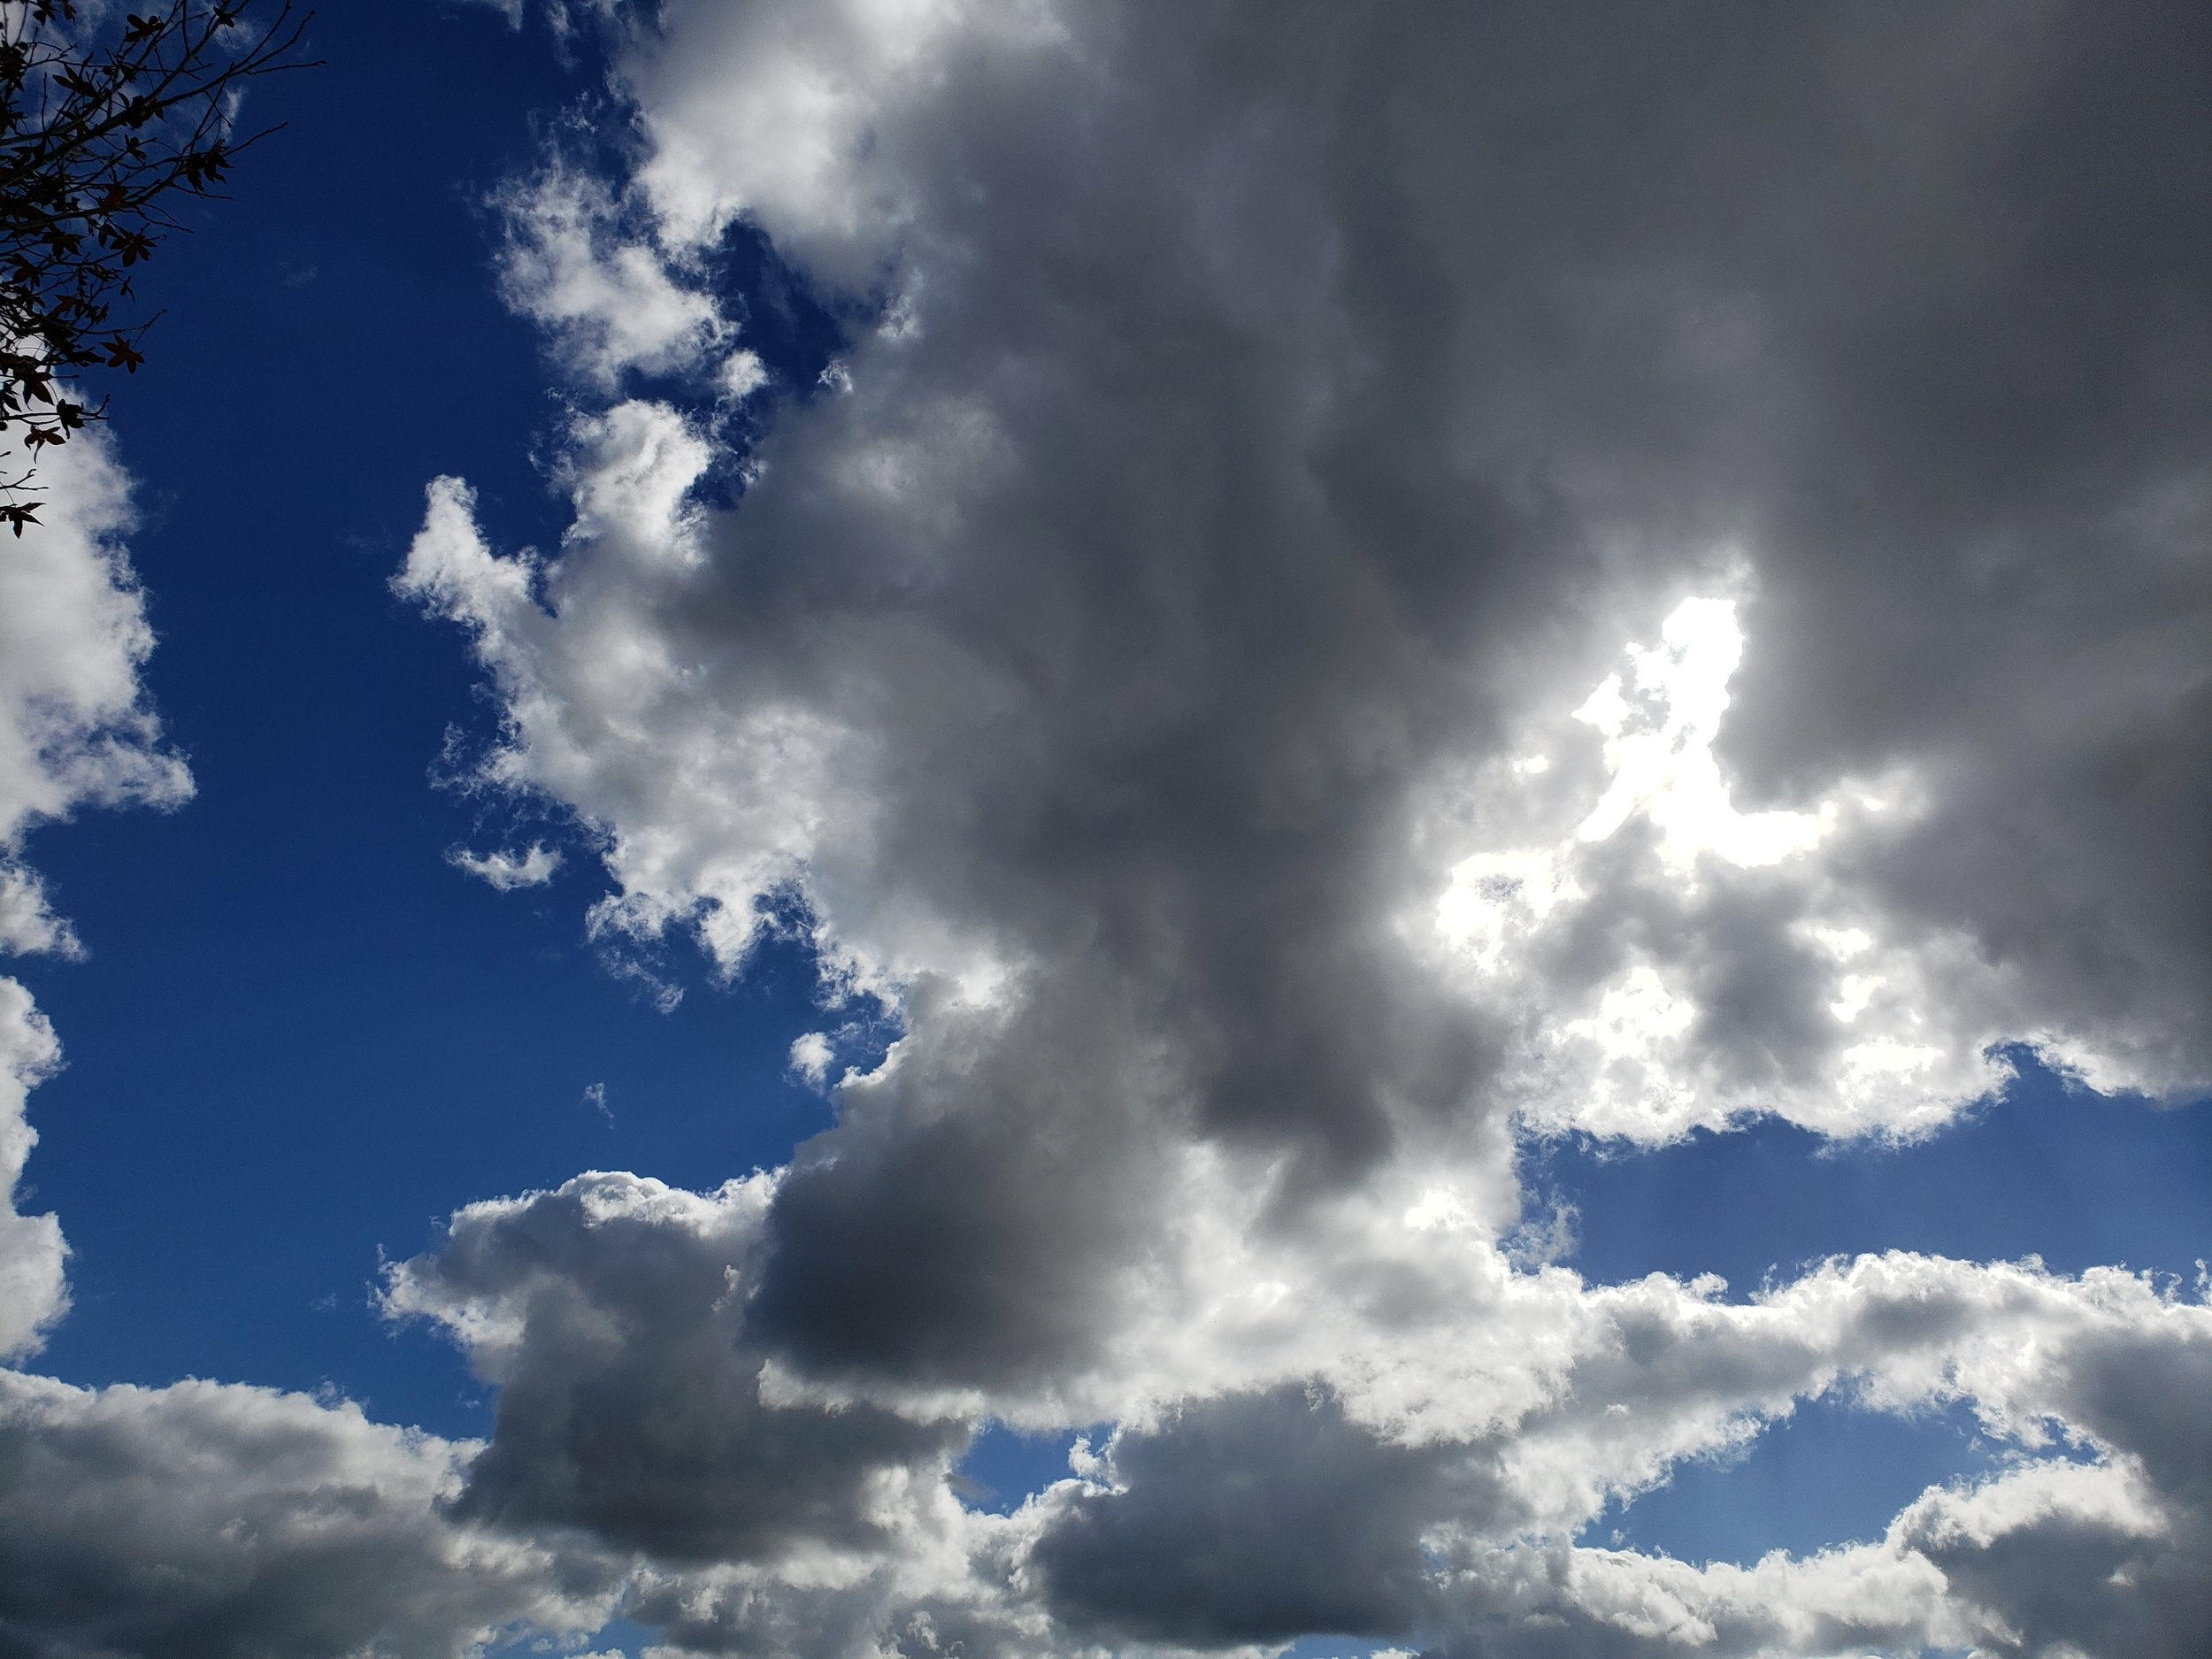 ivy_nevares_clouds5.jpg